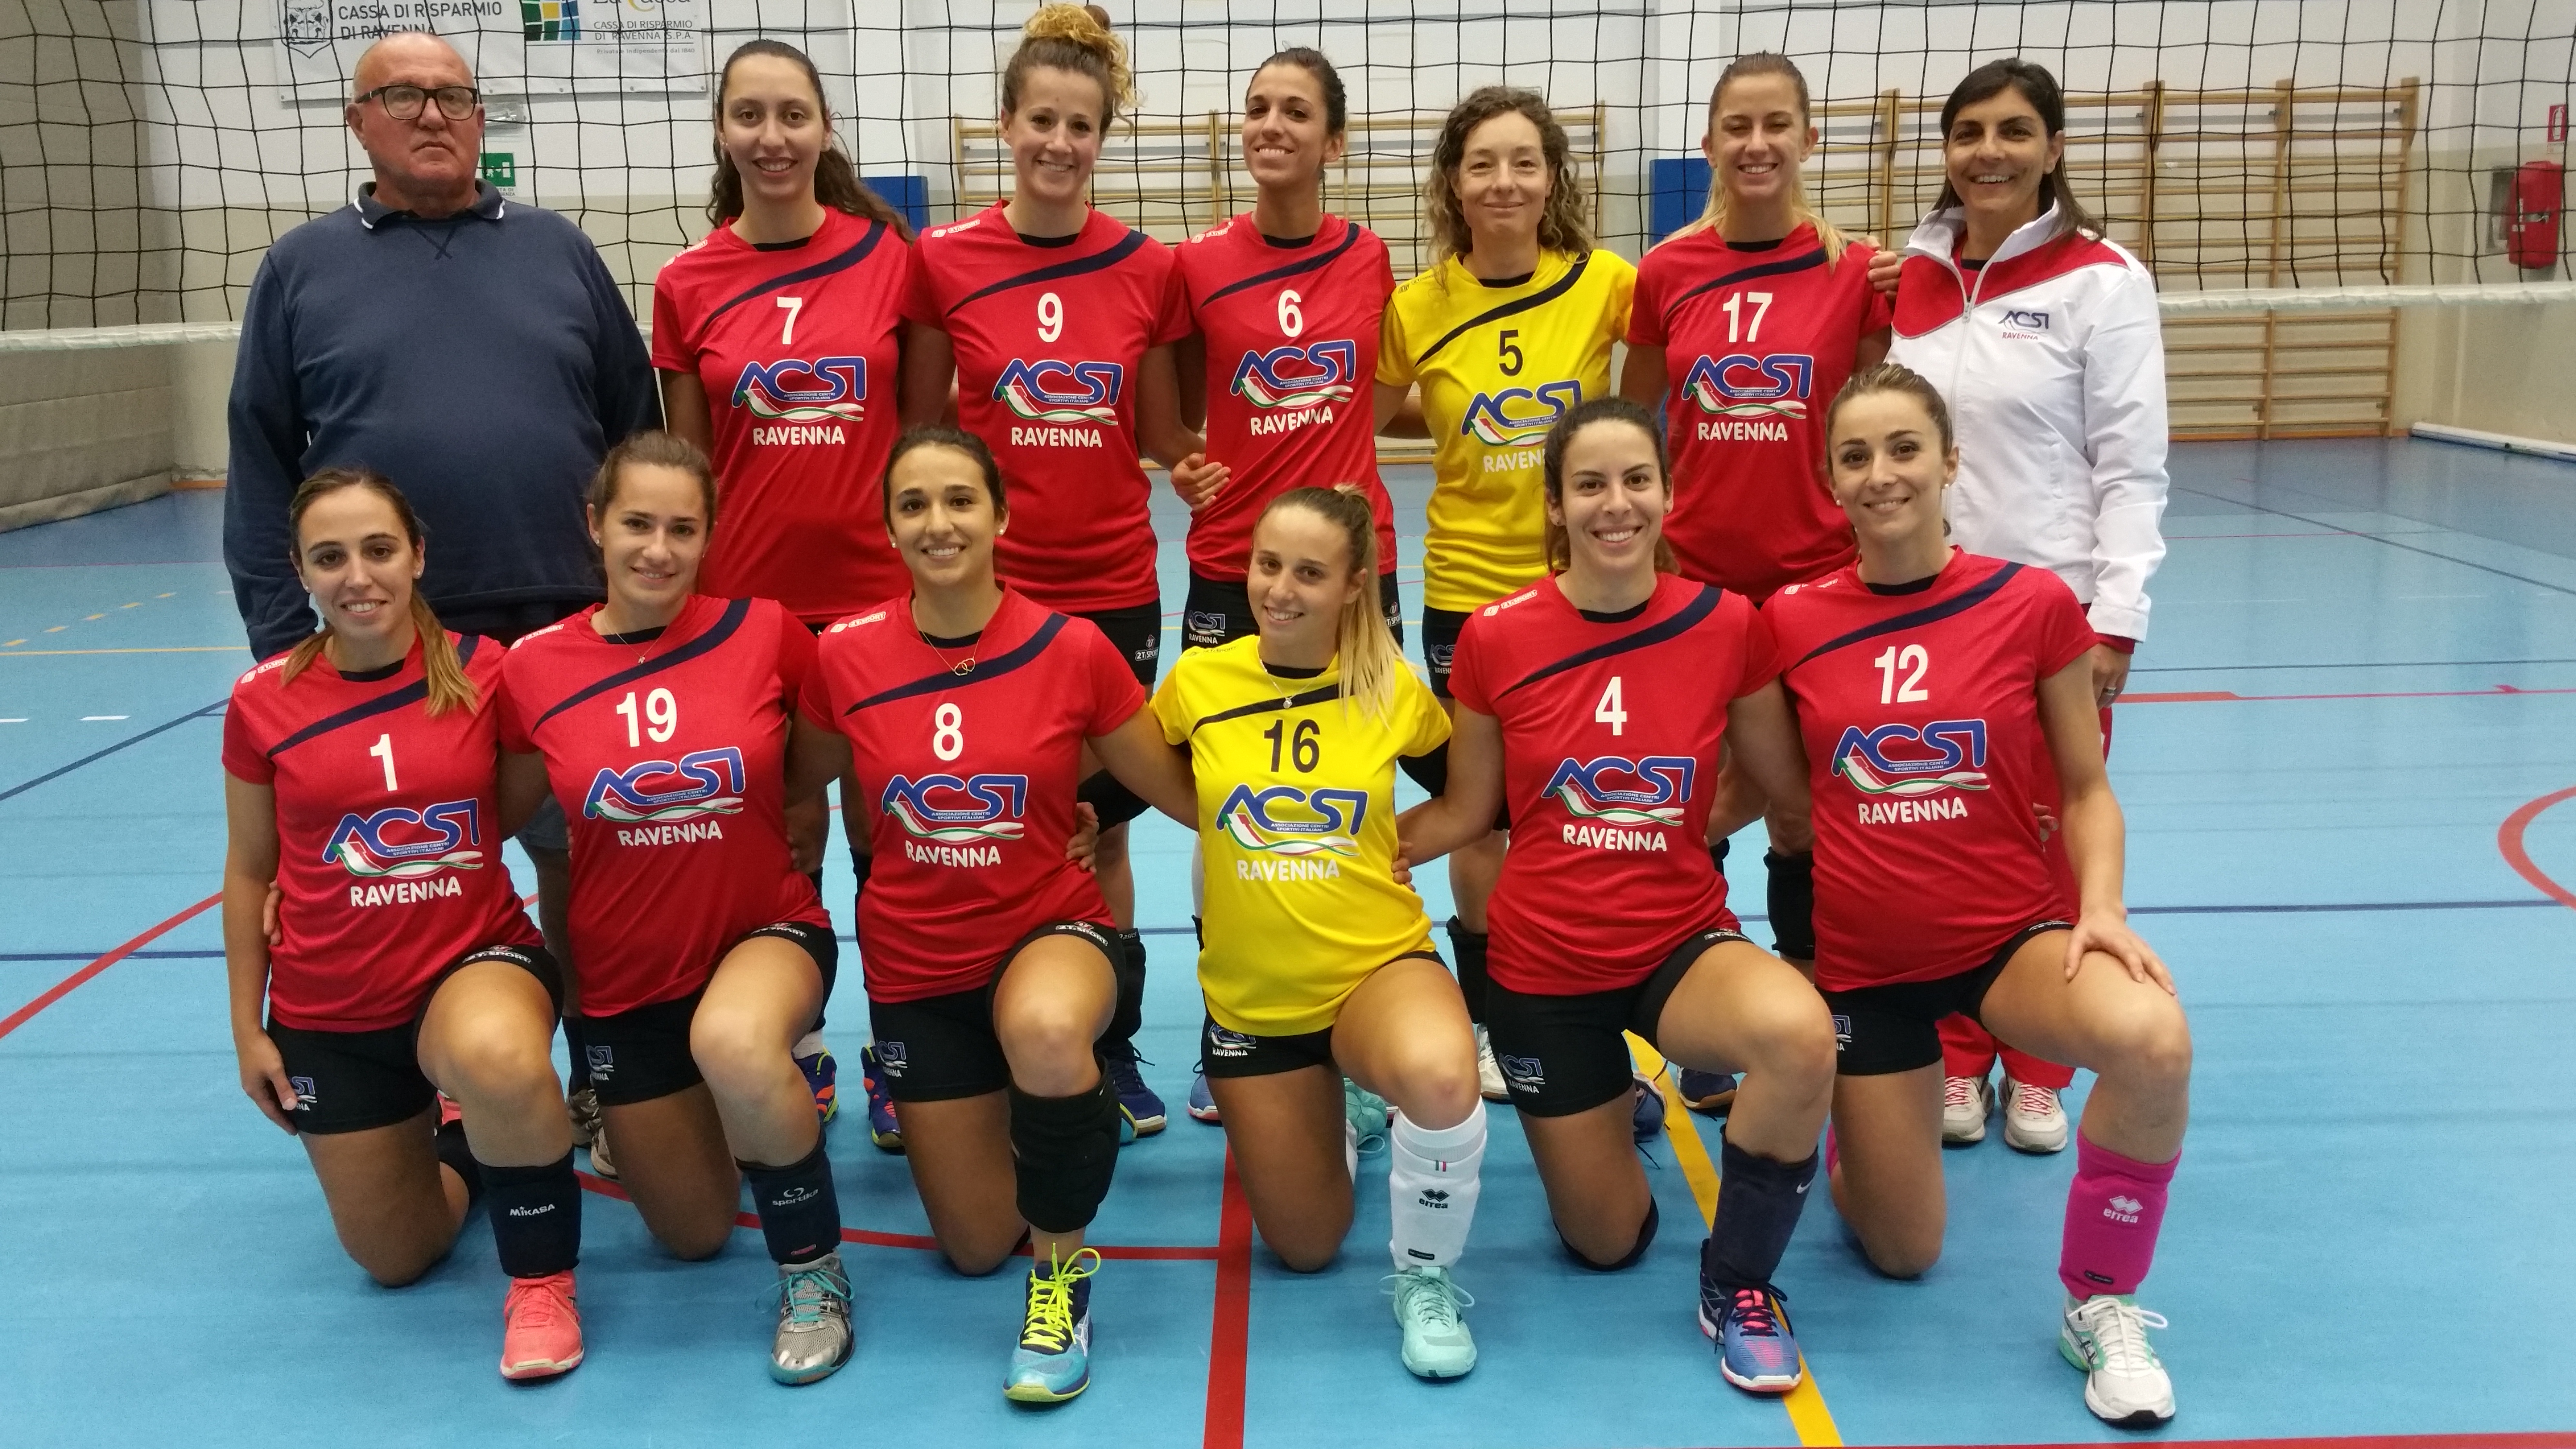 VOLLEY, RIPARTE L'AVVENTURA DELL'ACSI RAVENNA